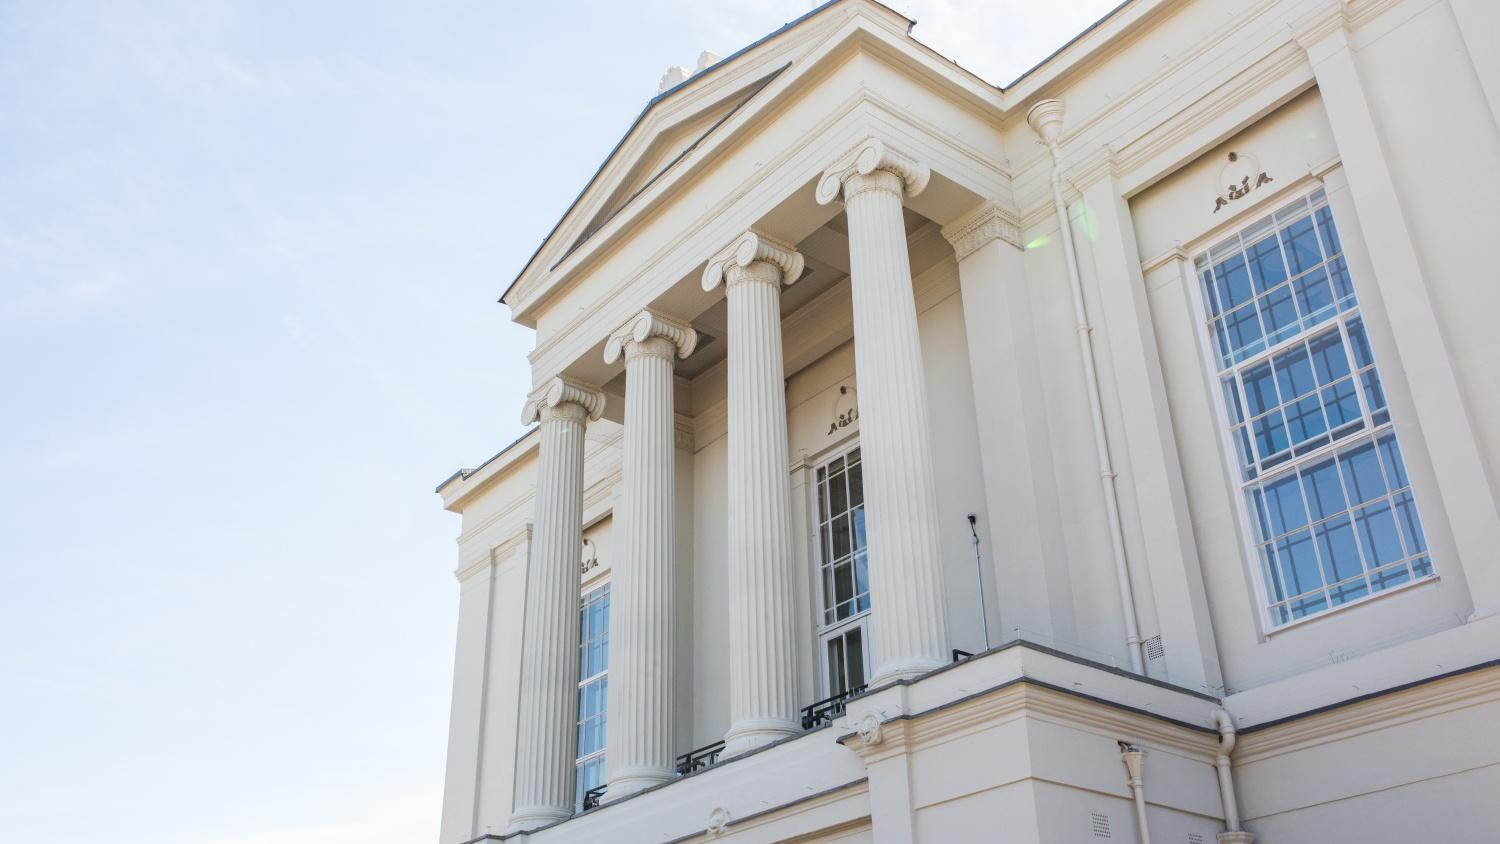 St Albans Museum + Gallery balcony from the side with a blue sky